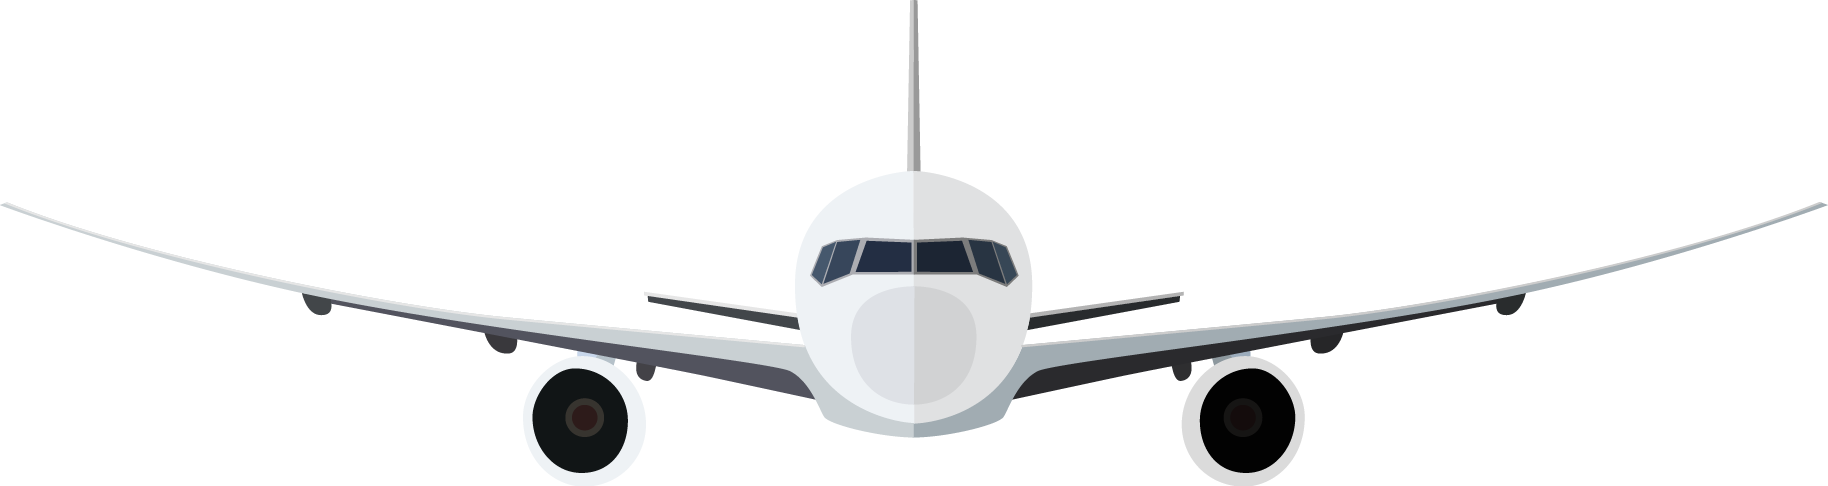 1828x486 Airplane Free To Use Clip Art 2